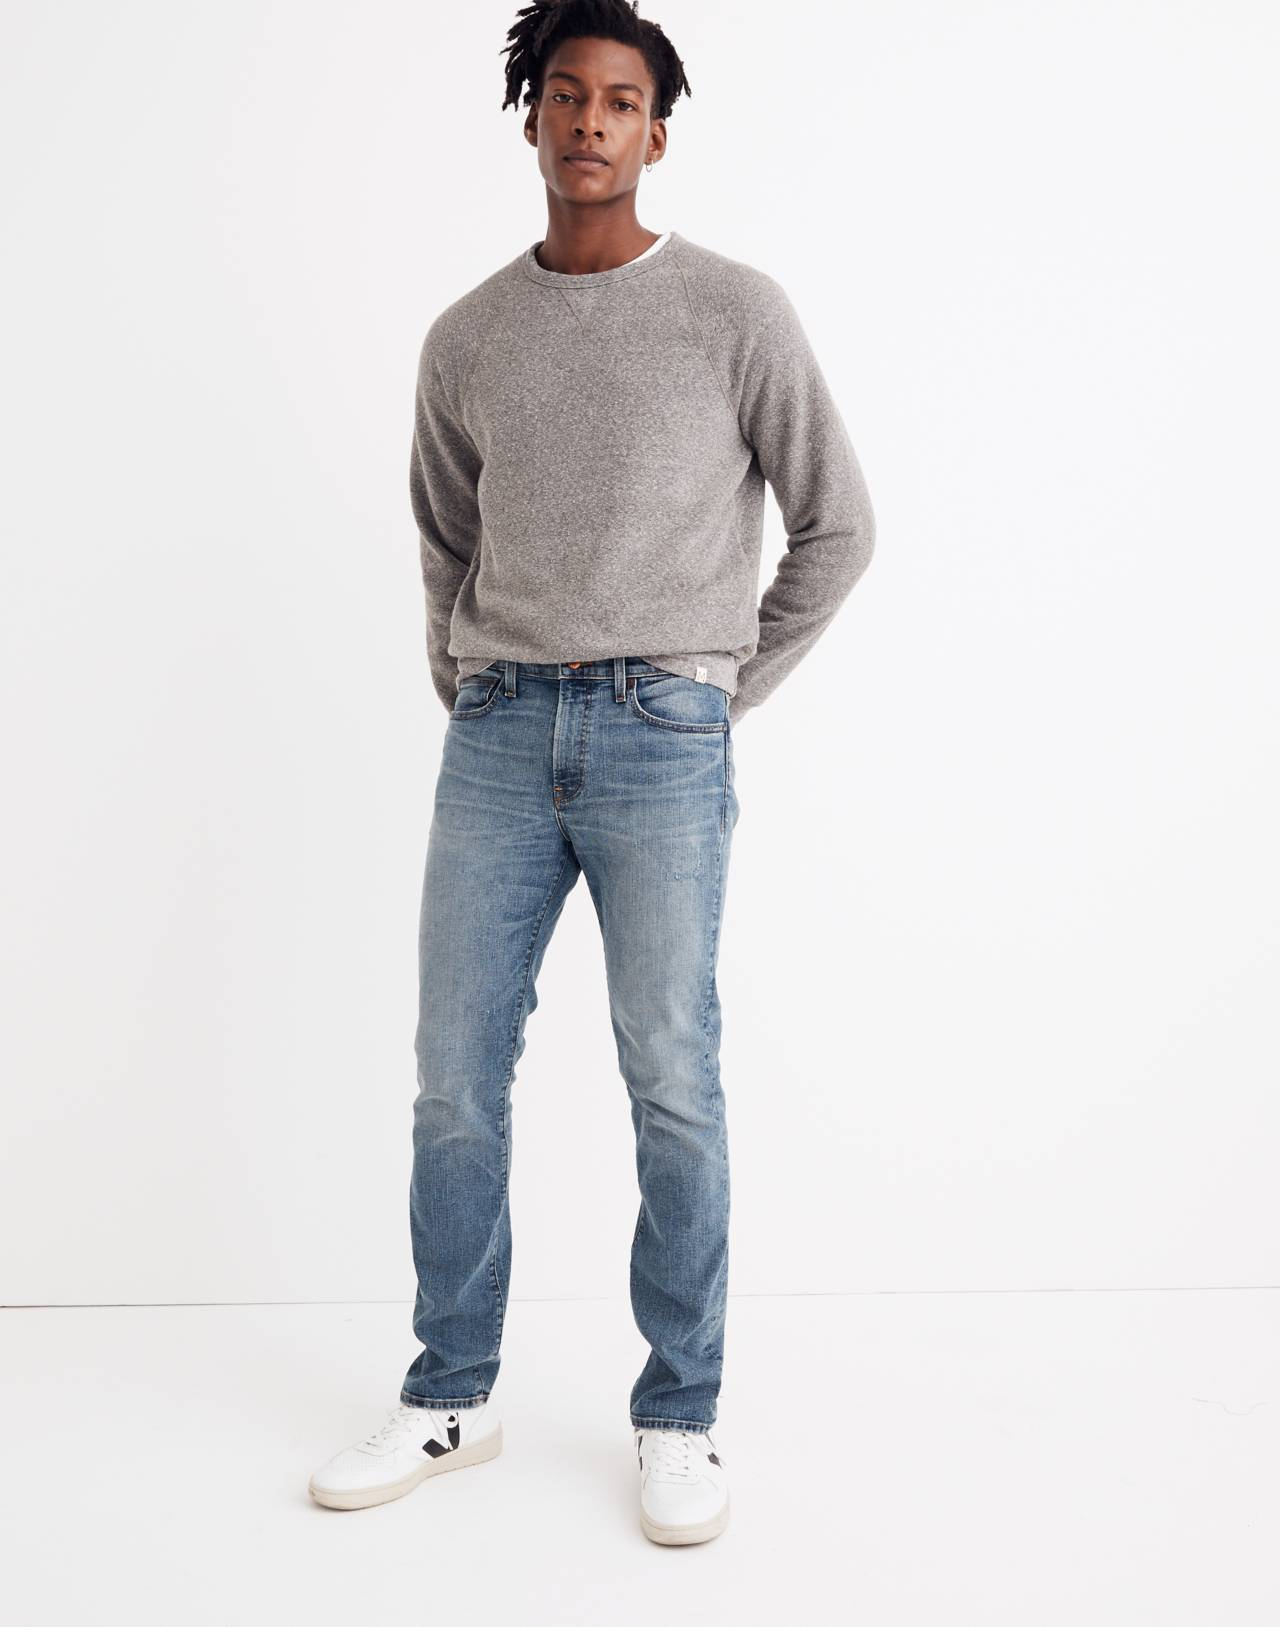 Slim Jeans in Santell Wash in santell image 2